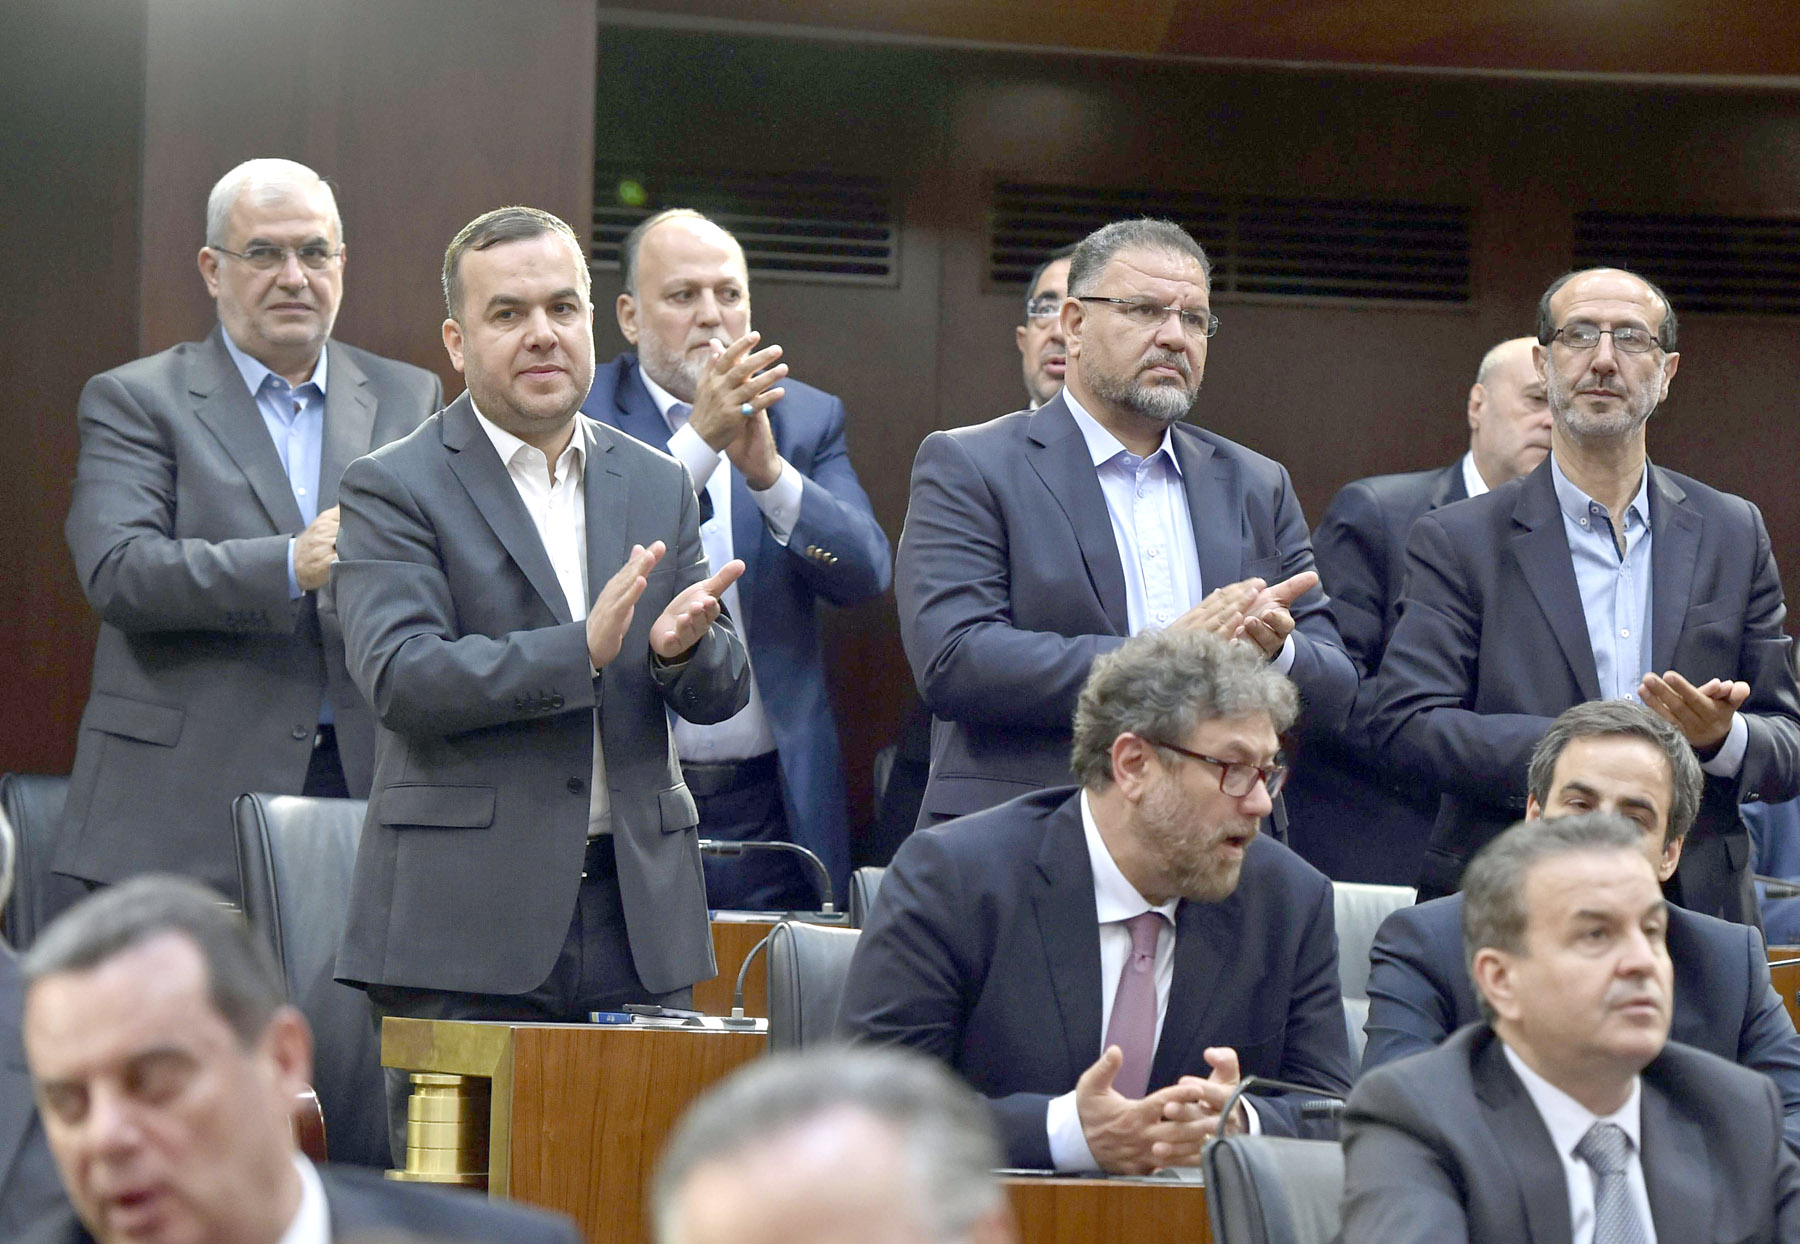 Calling the shots. Members of Hezbollah's parliamentary bloc applaud during a session at the parliament building in Beirut.  (AP)